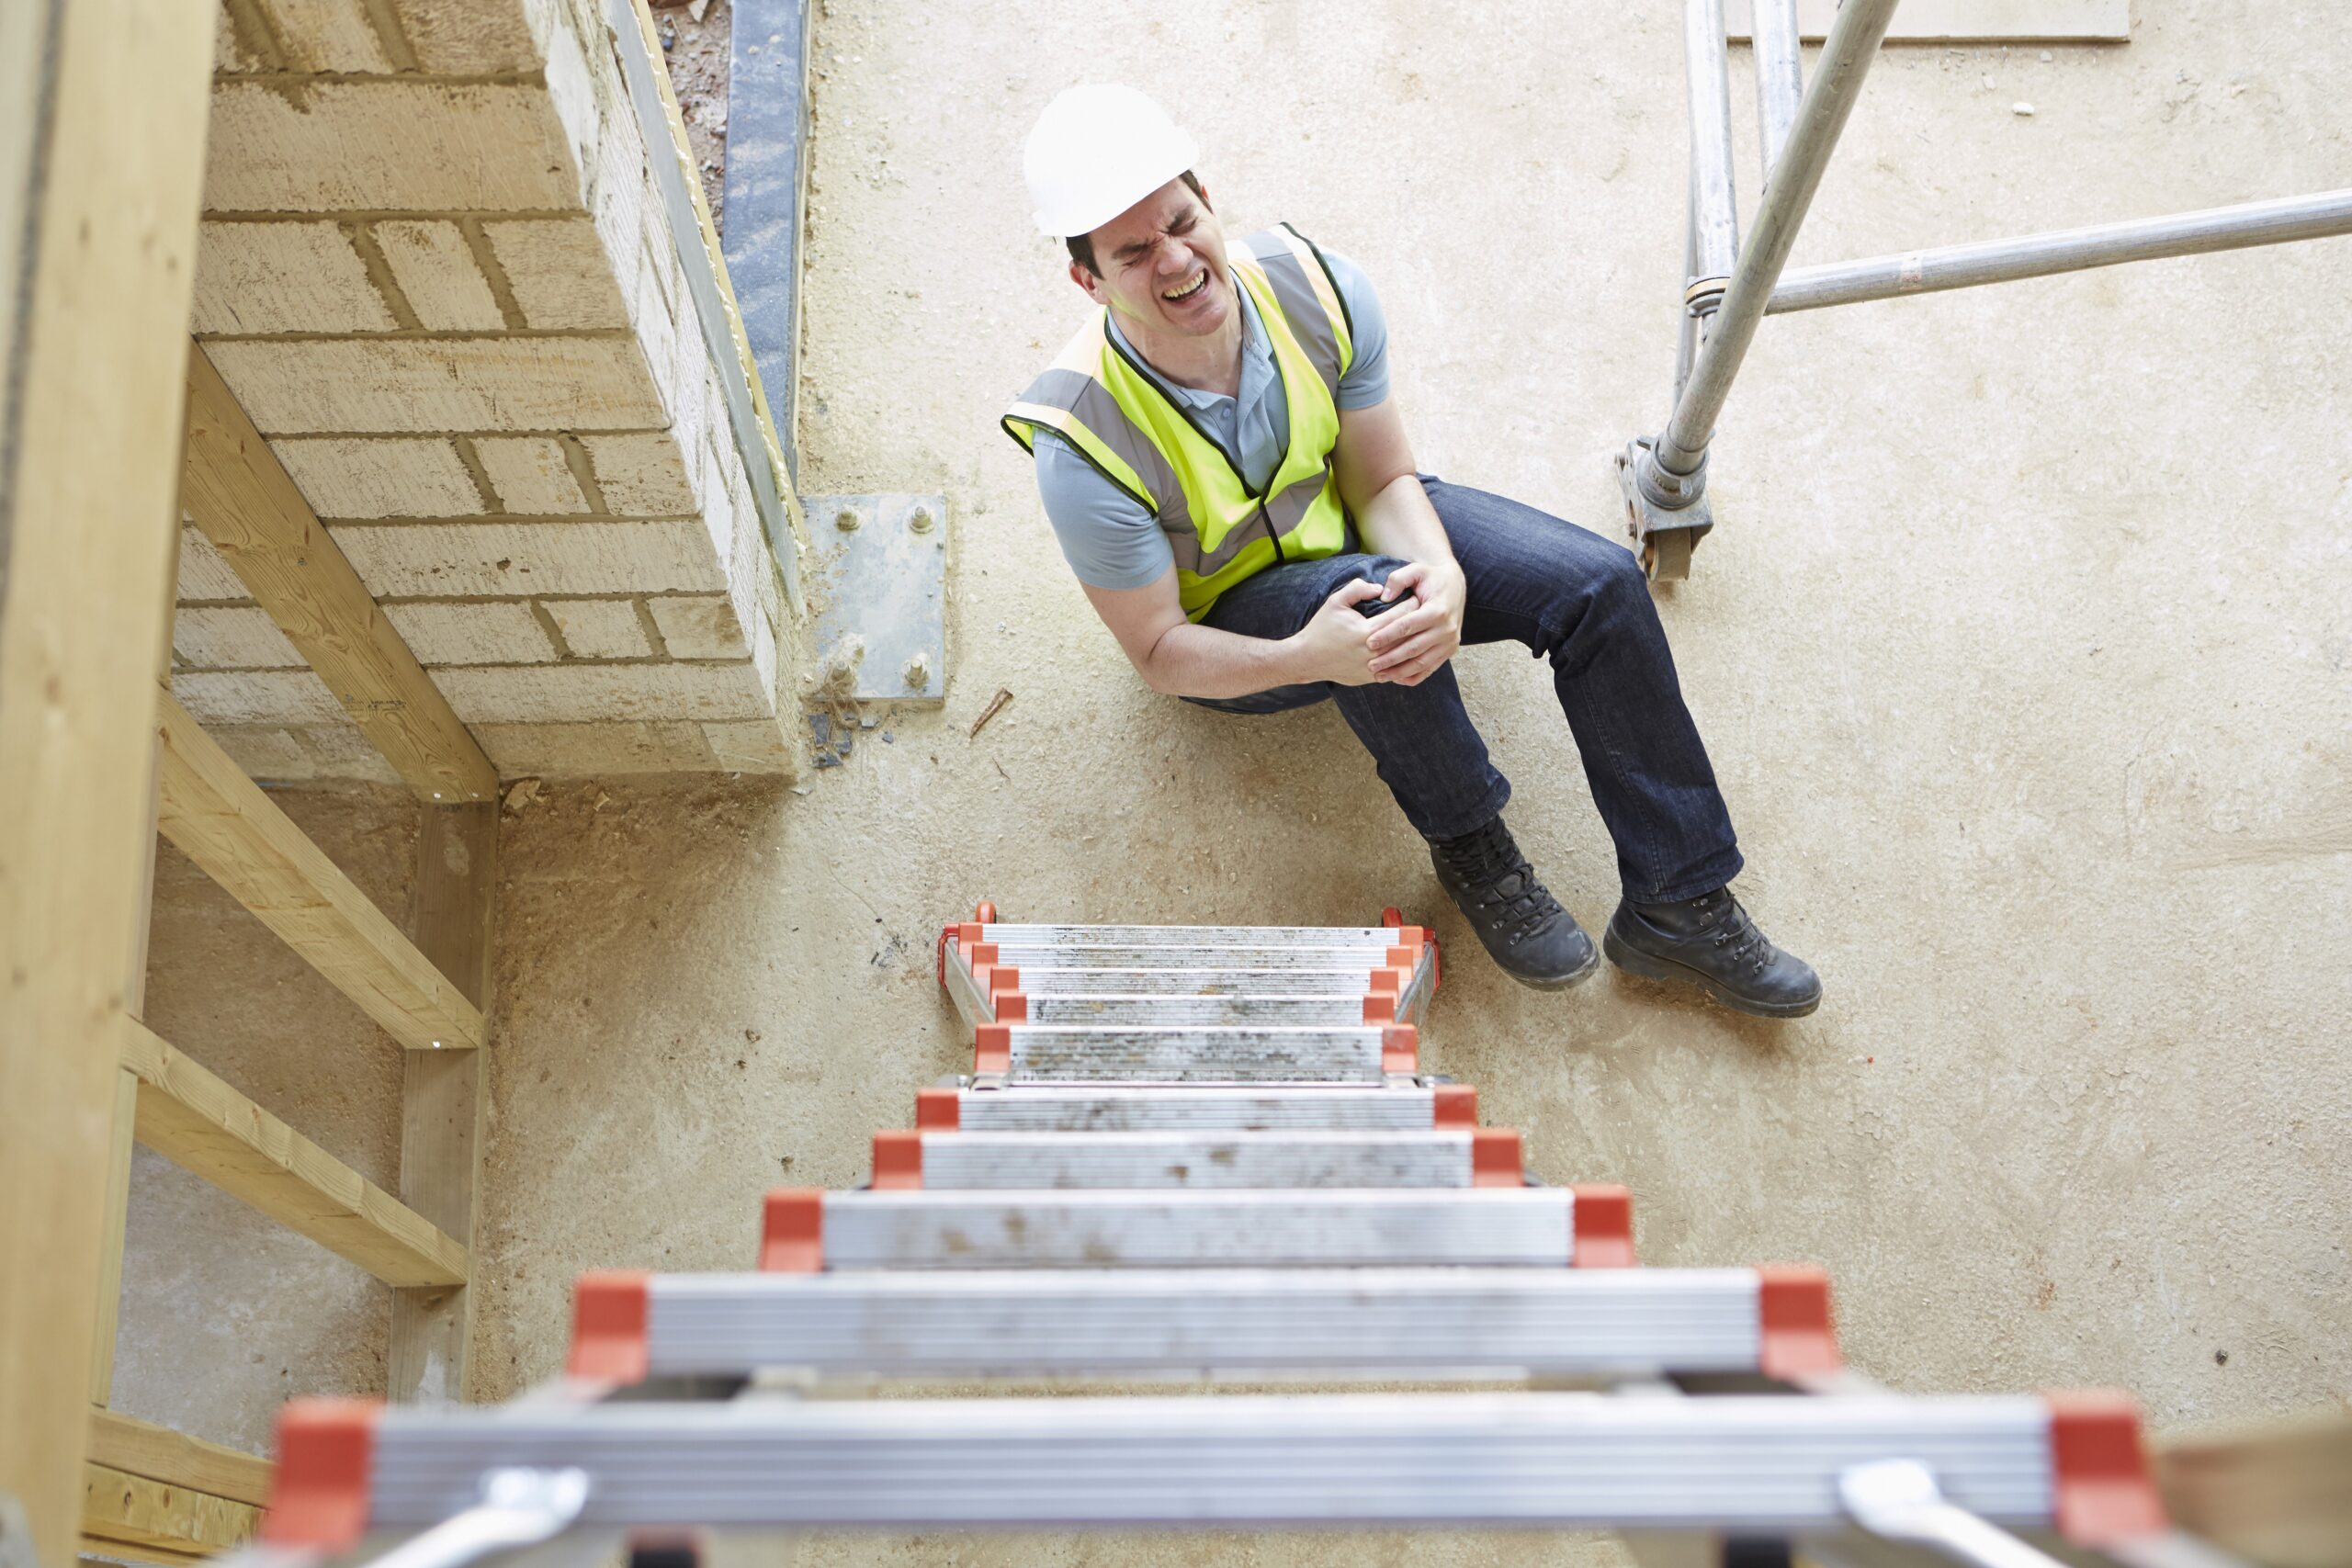 Make sure your business is protected with Workers Compensation insurance